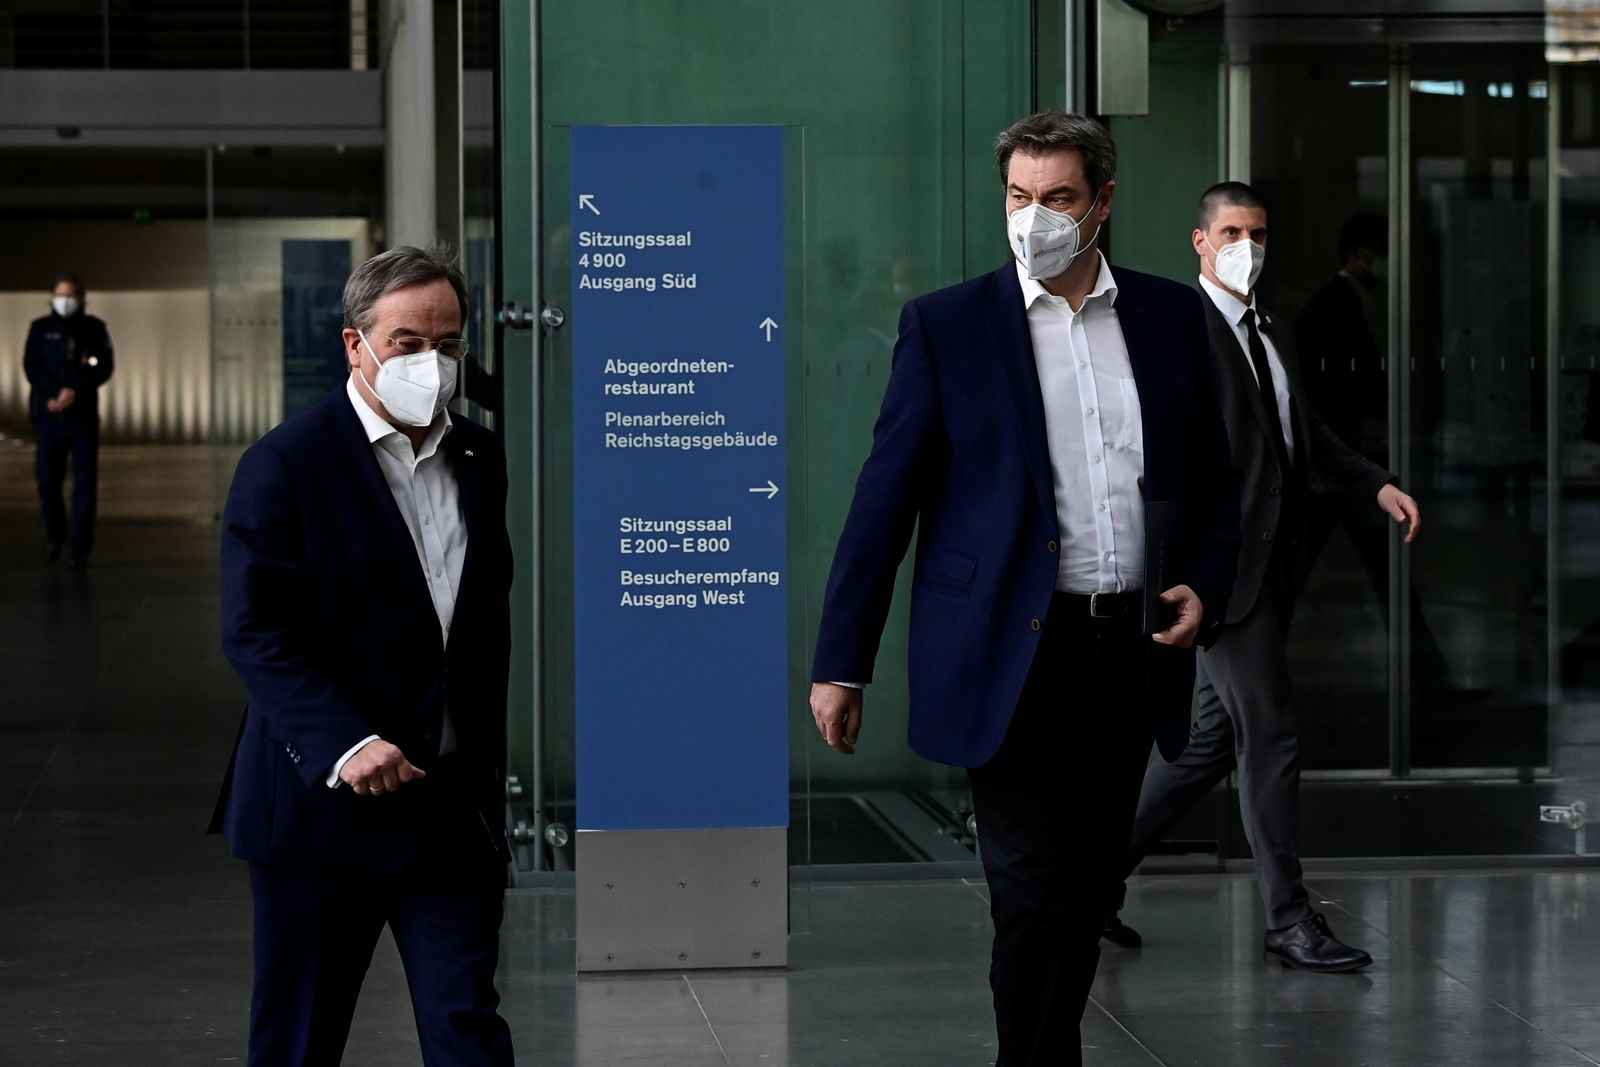 Armin Laschet and Markus Soder walk after a news conference in Berlin